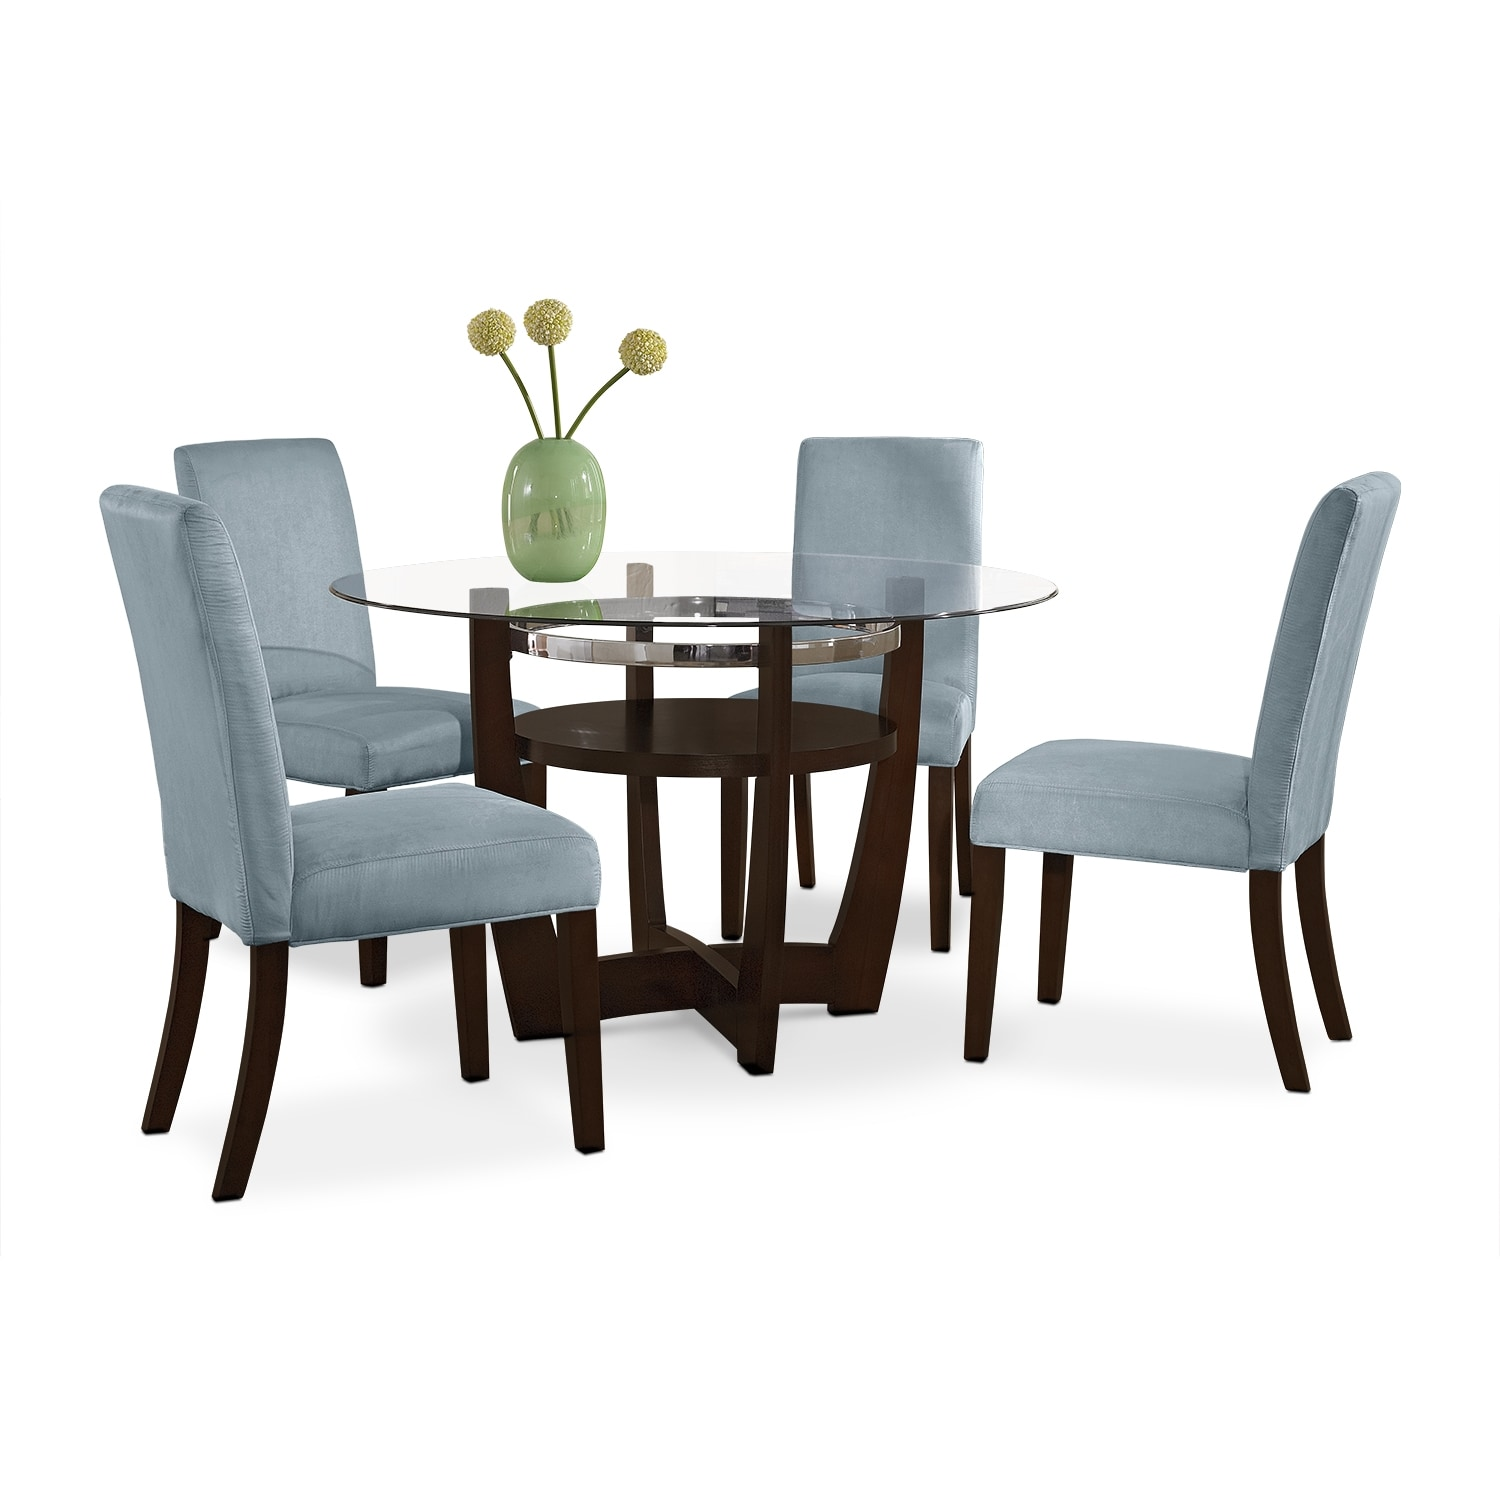 Furnishings for every room online and store furniture for Dinette furniture